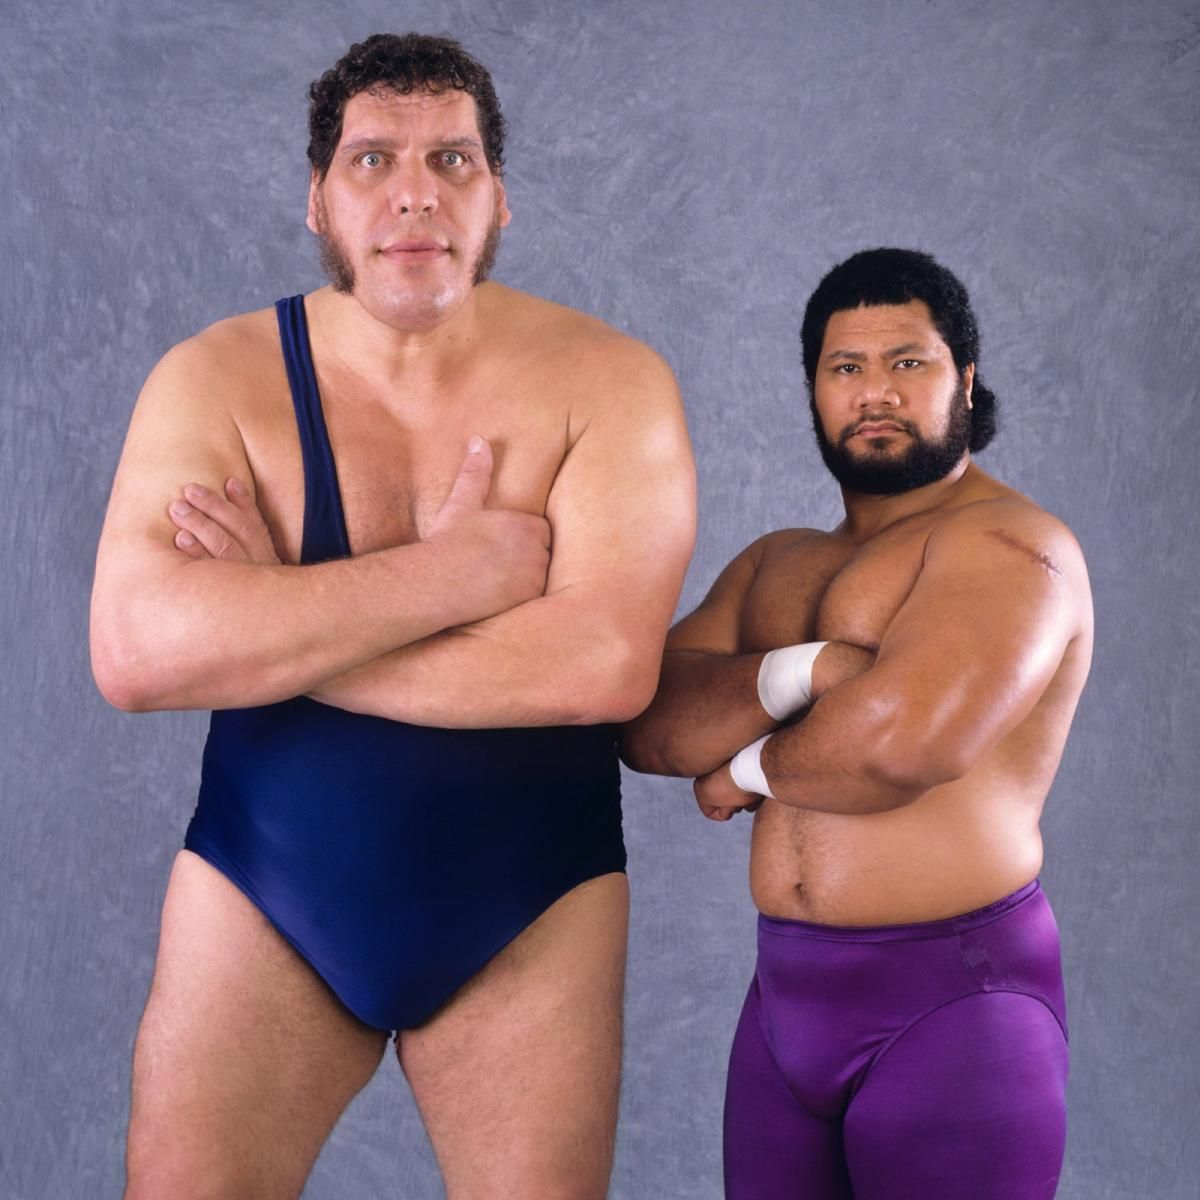 What Are The 50 Greatest Tag Team Names Ever Click To Find Out